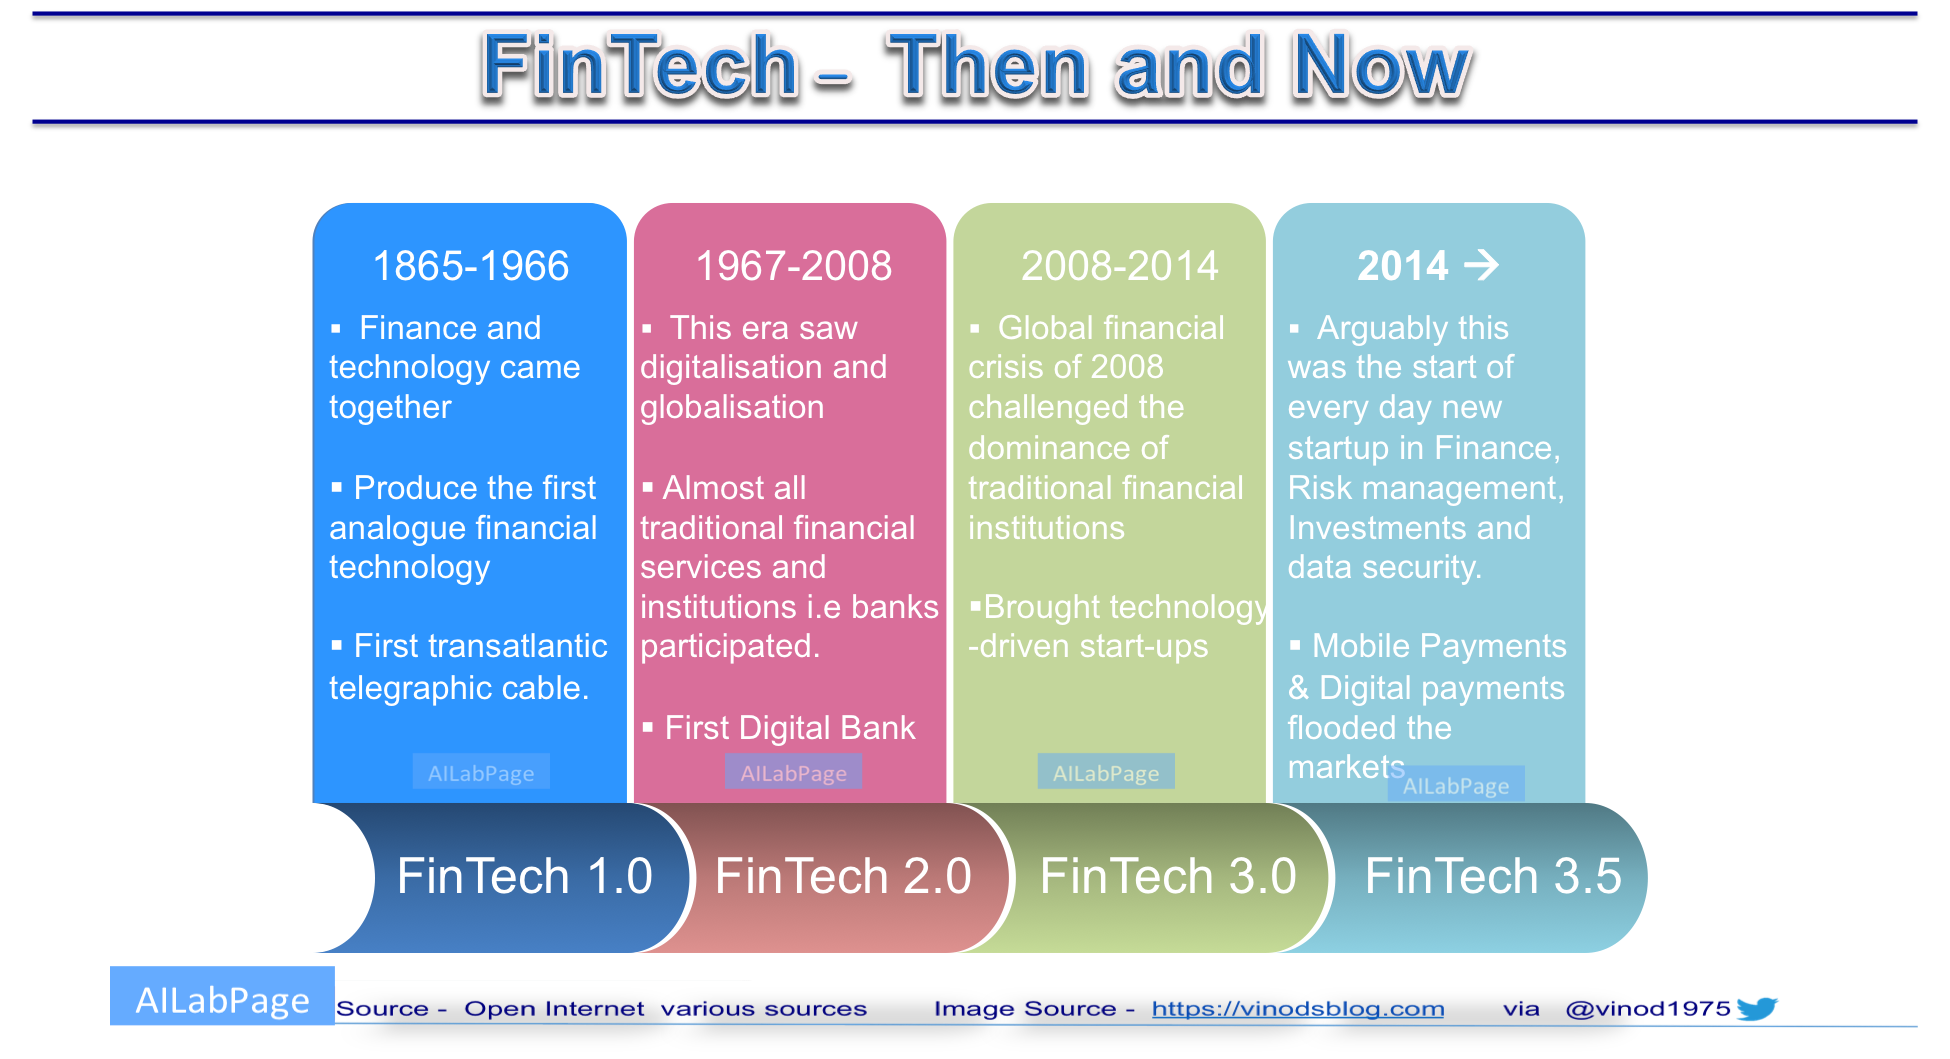 AI and Machine Learning boosting FinTech